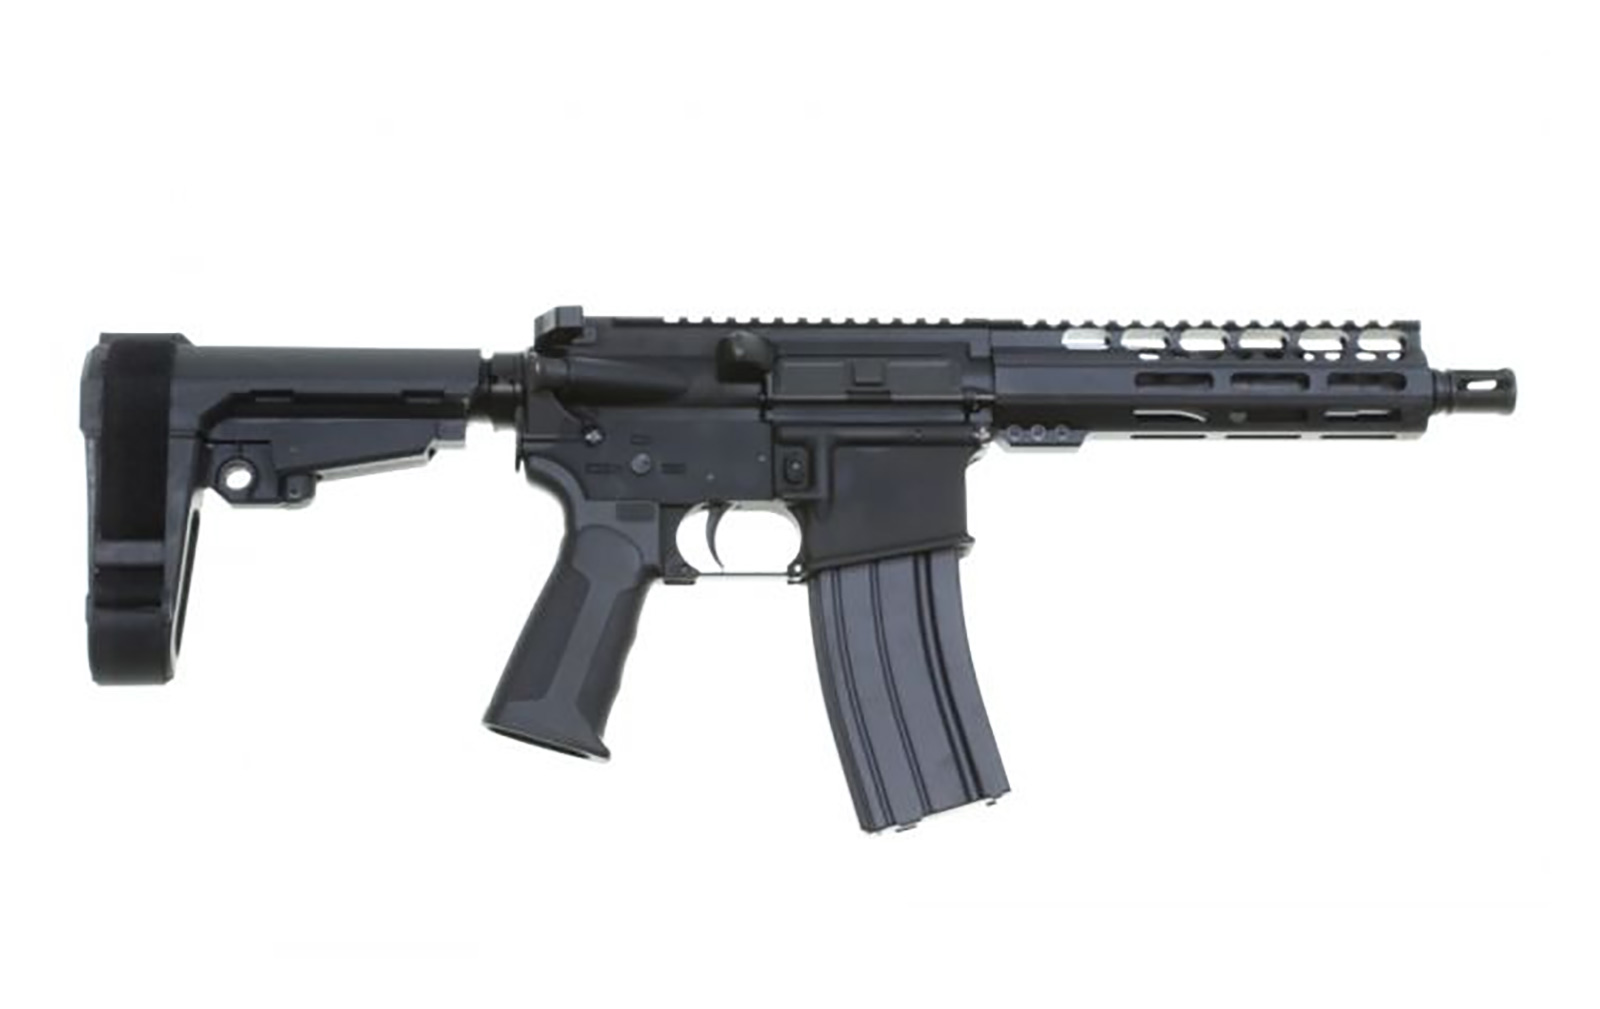 cbc-ps2-forged-aluminum-ar-pistol-black-5-56nato-7-5-barrel-7-m-lok-rail-sba3-brace